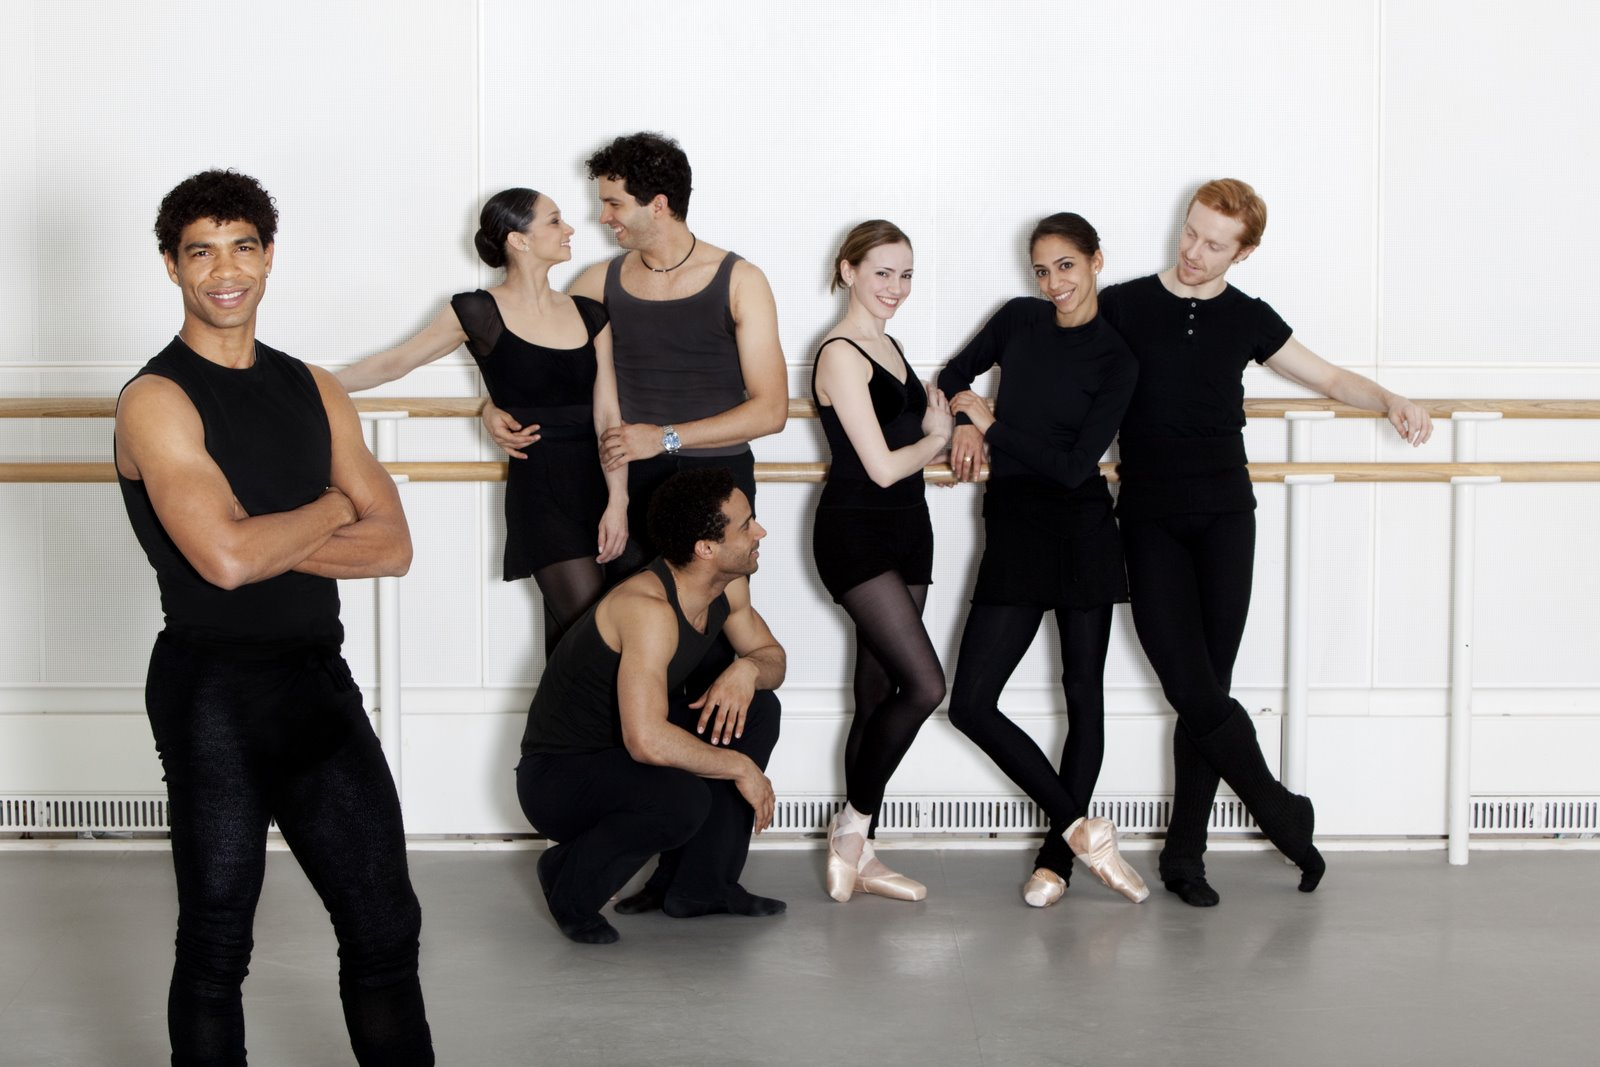 ballet dancers in rehearsal clothes with Carlos Acosta